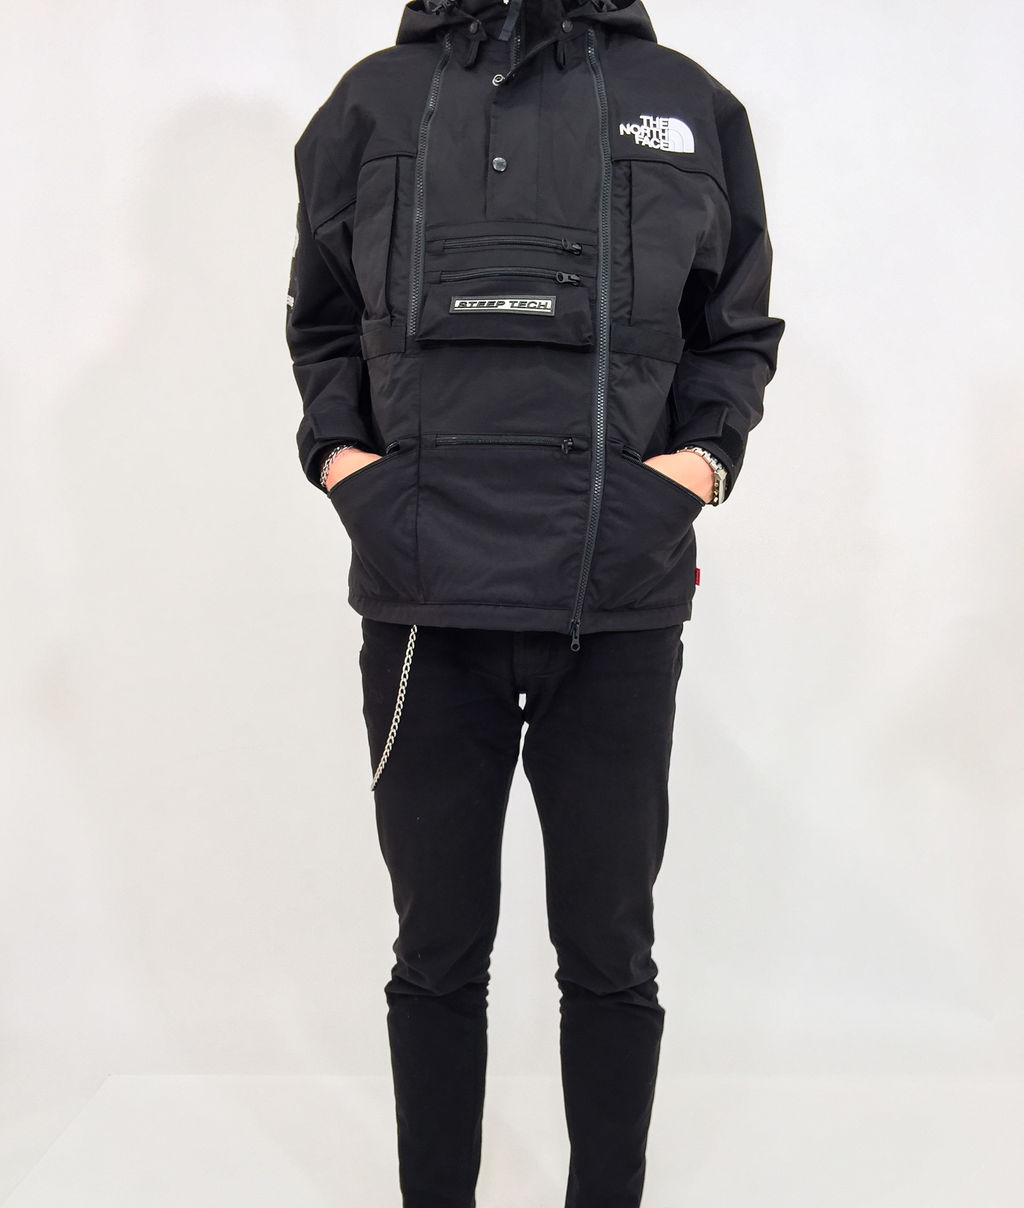 newest collection e002b 5beb1 order supreme the north face steep tech hooded jacket dc4c5 134cb  sale the  north facesteep tech hooded jacket img0692 319b3 d36c8